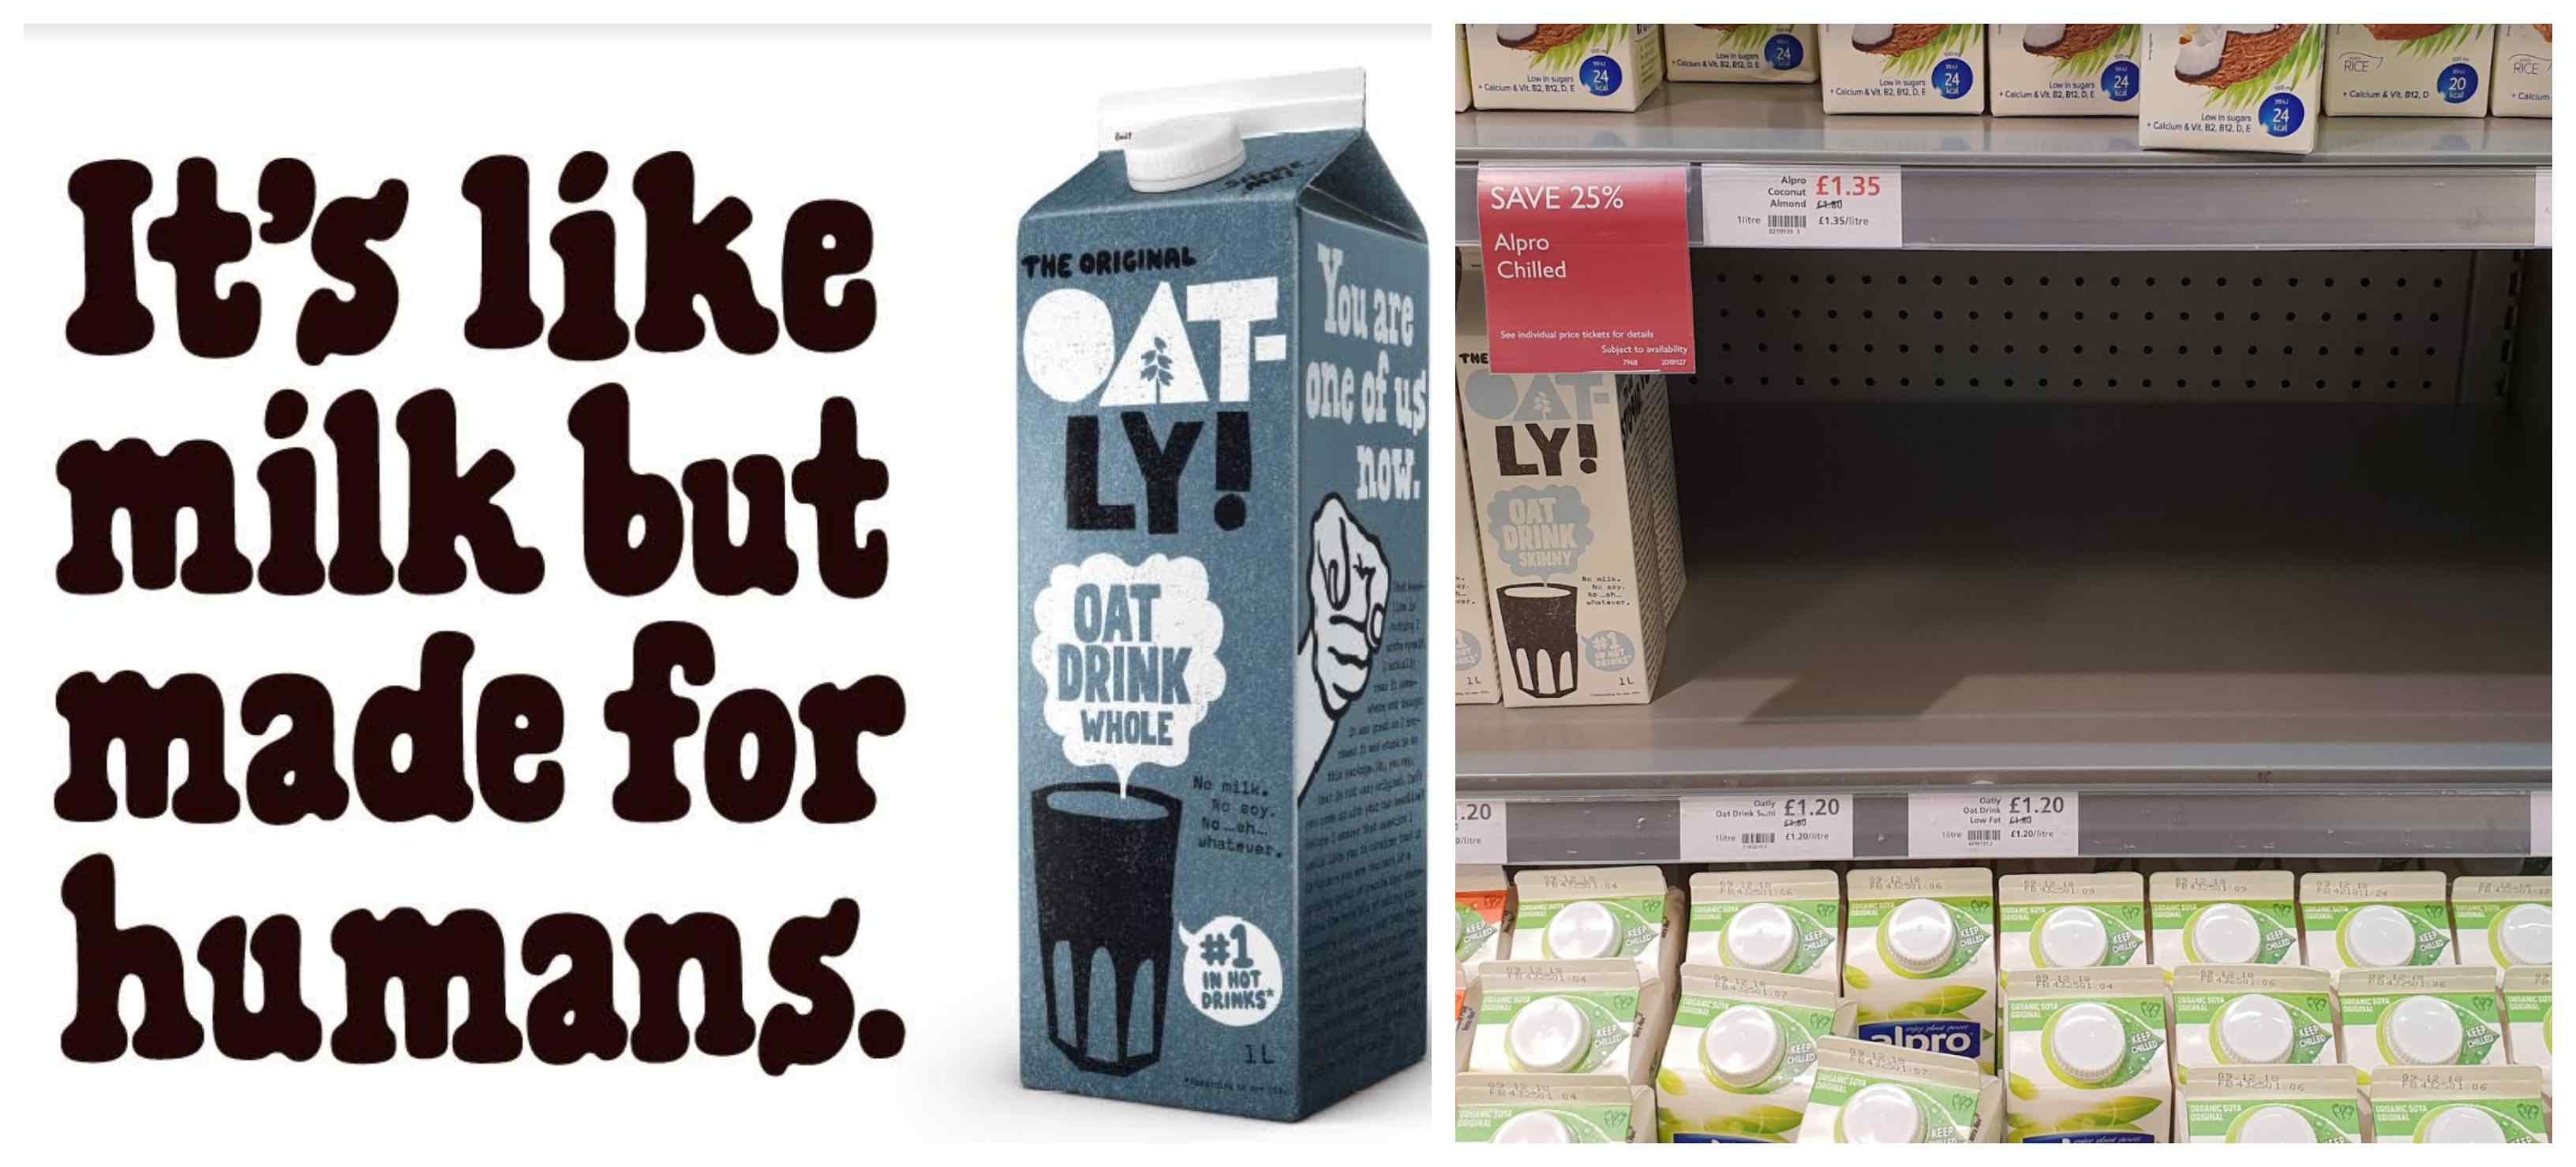 Oatly's popular campaign and empty shelves